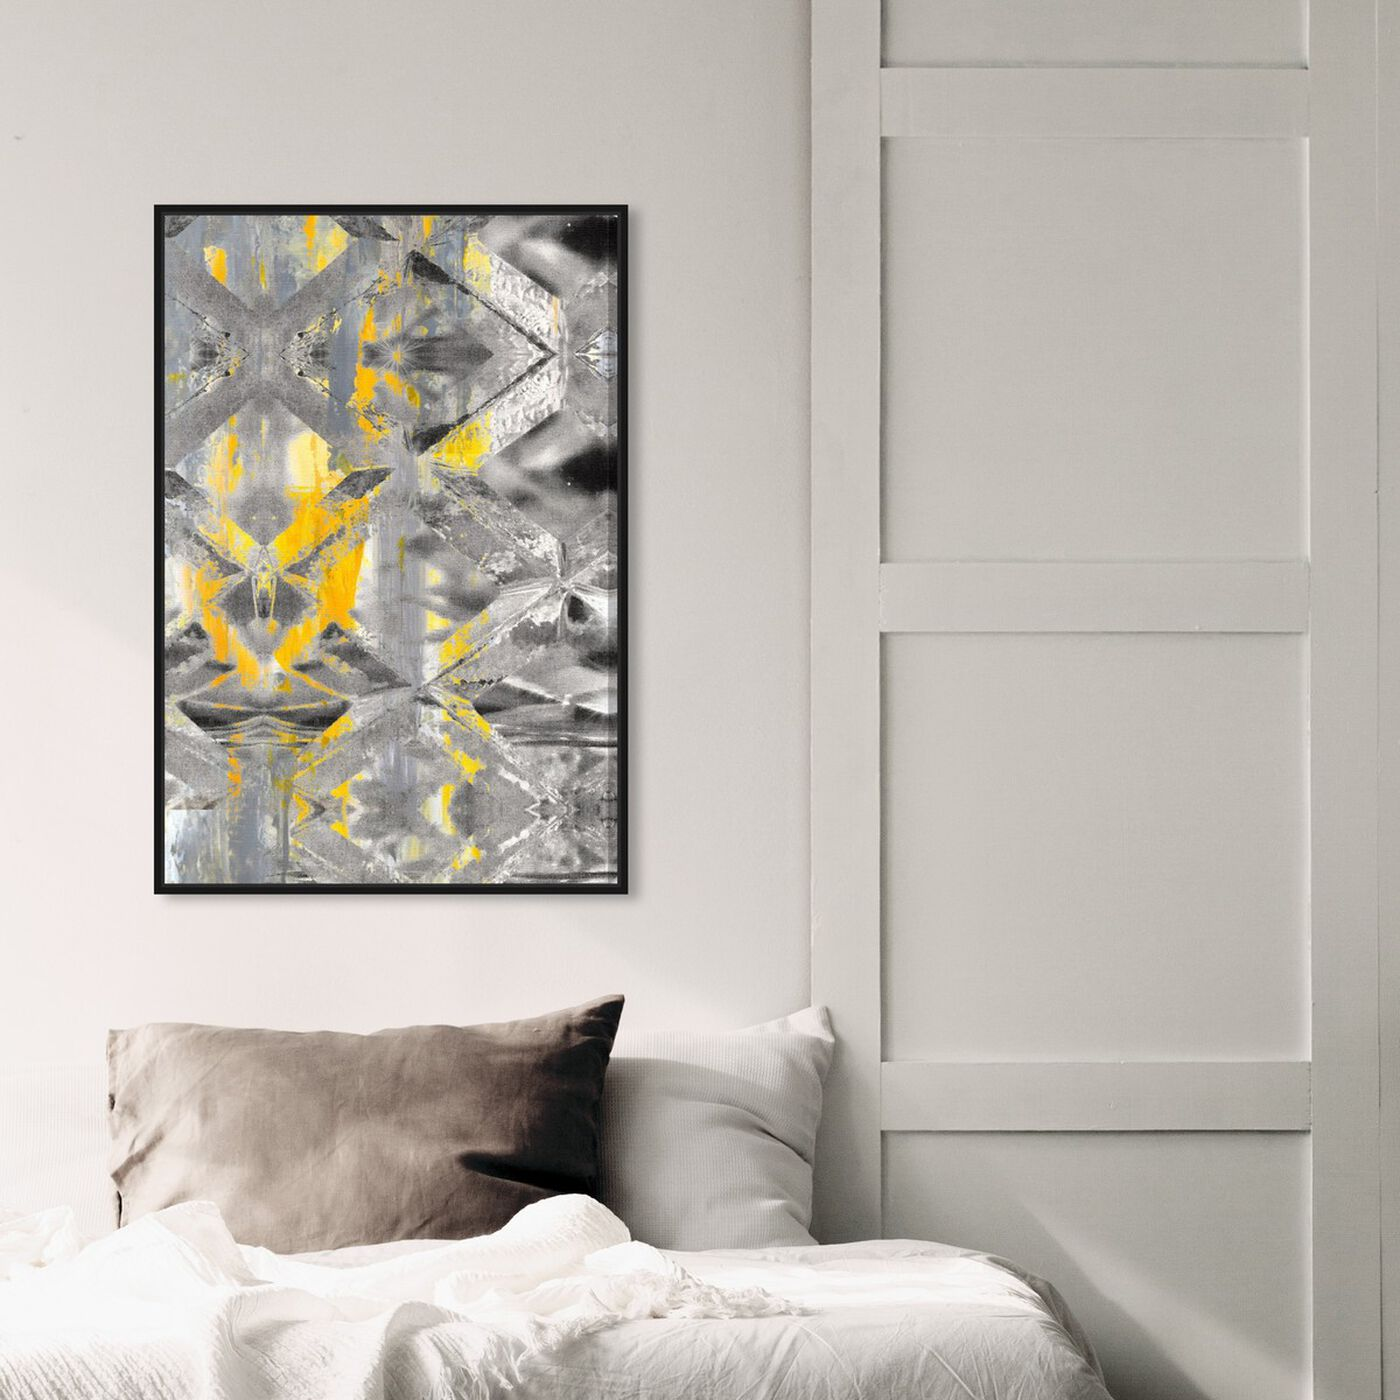 Hanging view of Gris Roca featuring abstract and crystals art.